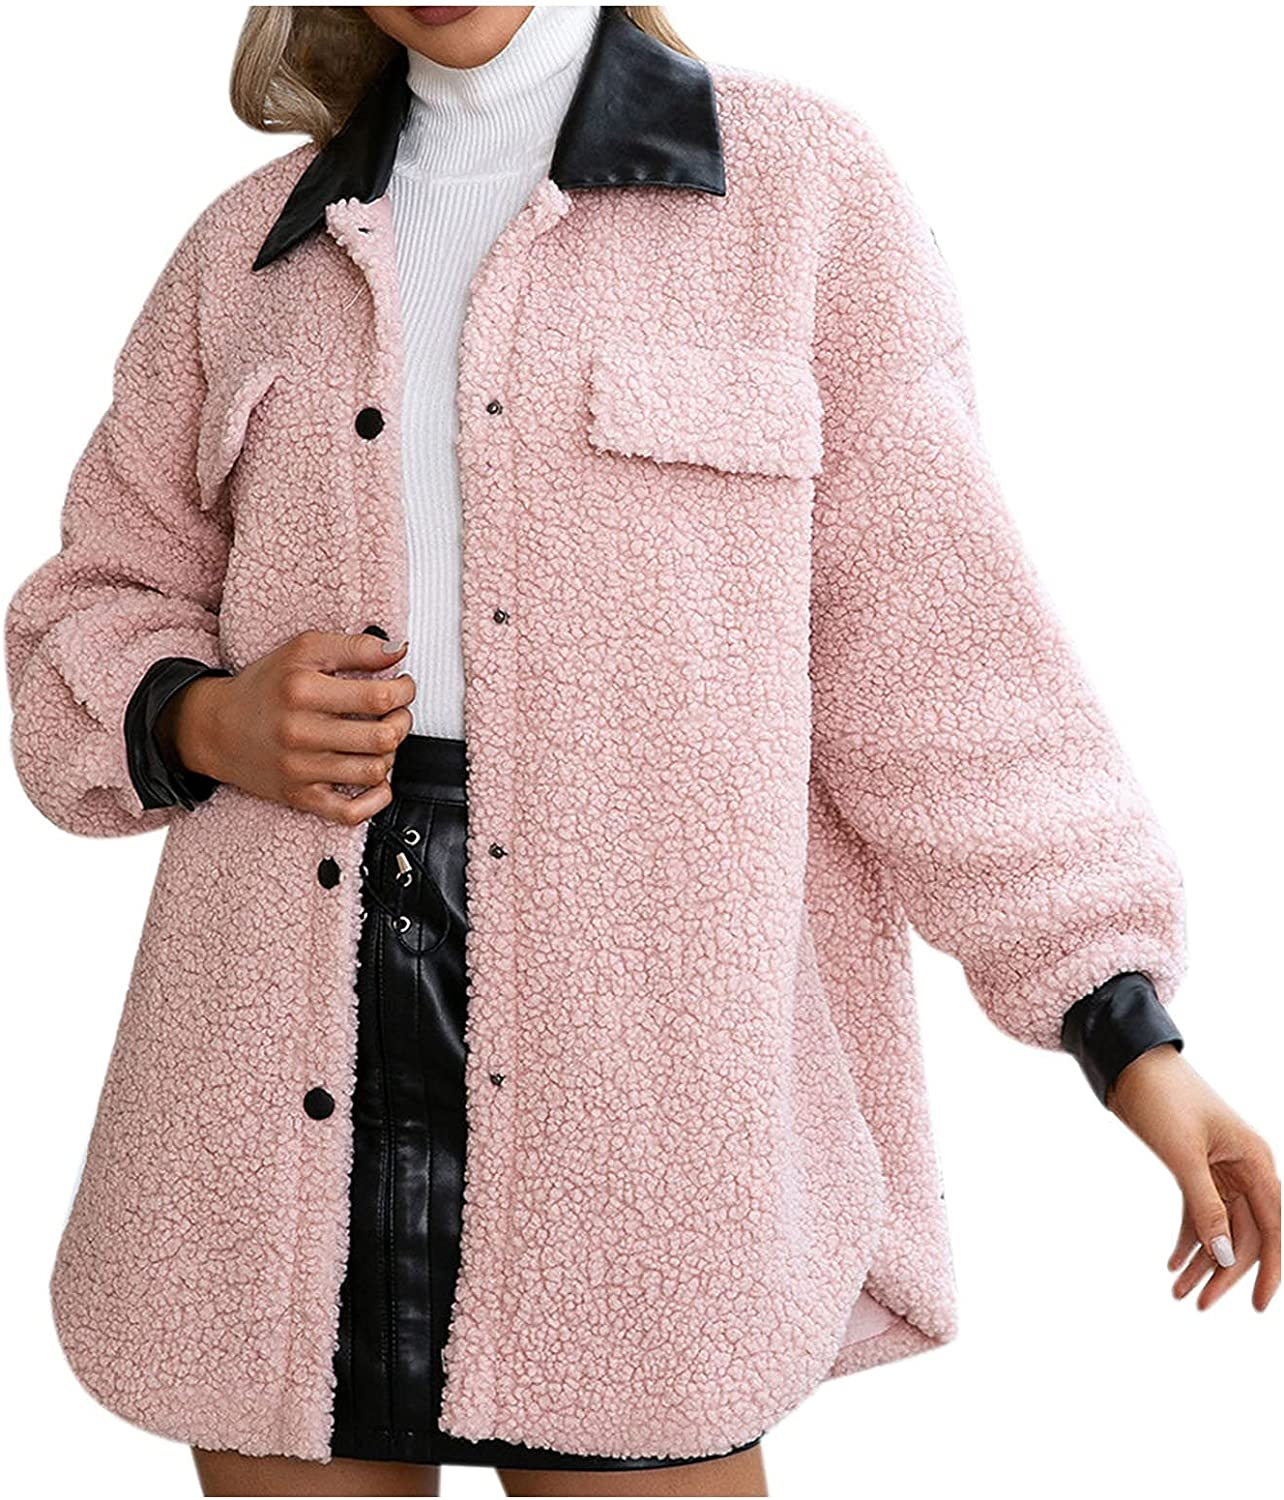 Casual Today's only Women's Warm Faux Plush Coat Don't miss the campaign Pu Leather Winter Thicken St